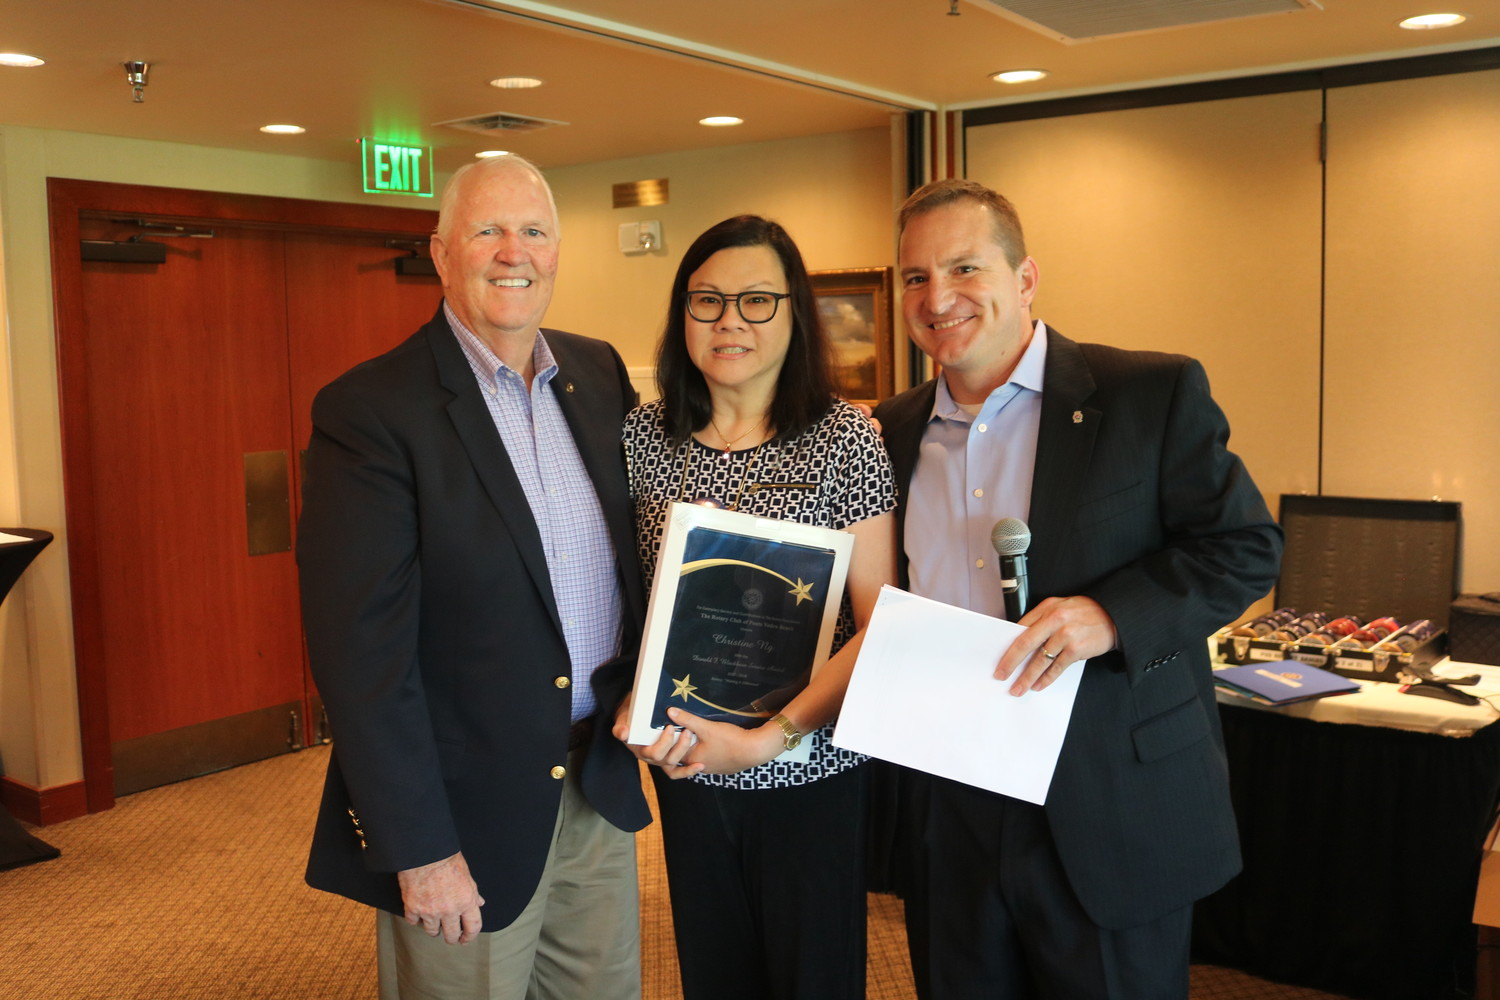 Christine Ng (center) receives the Don Blackburn Award from Bruce Barber (left) and Billy Wagner (right).